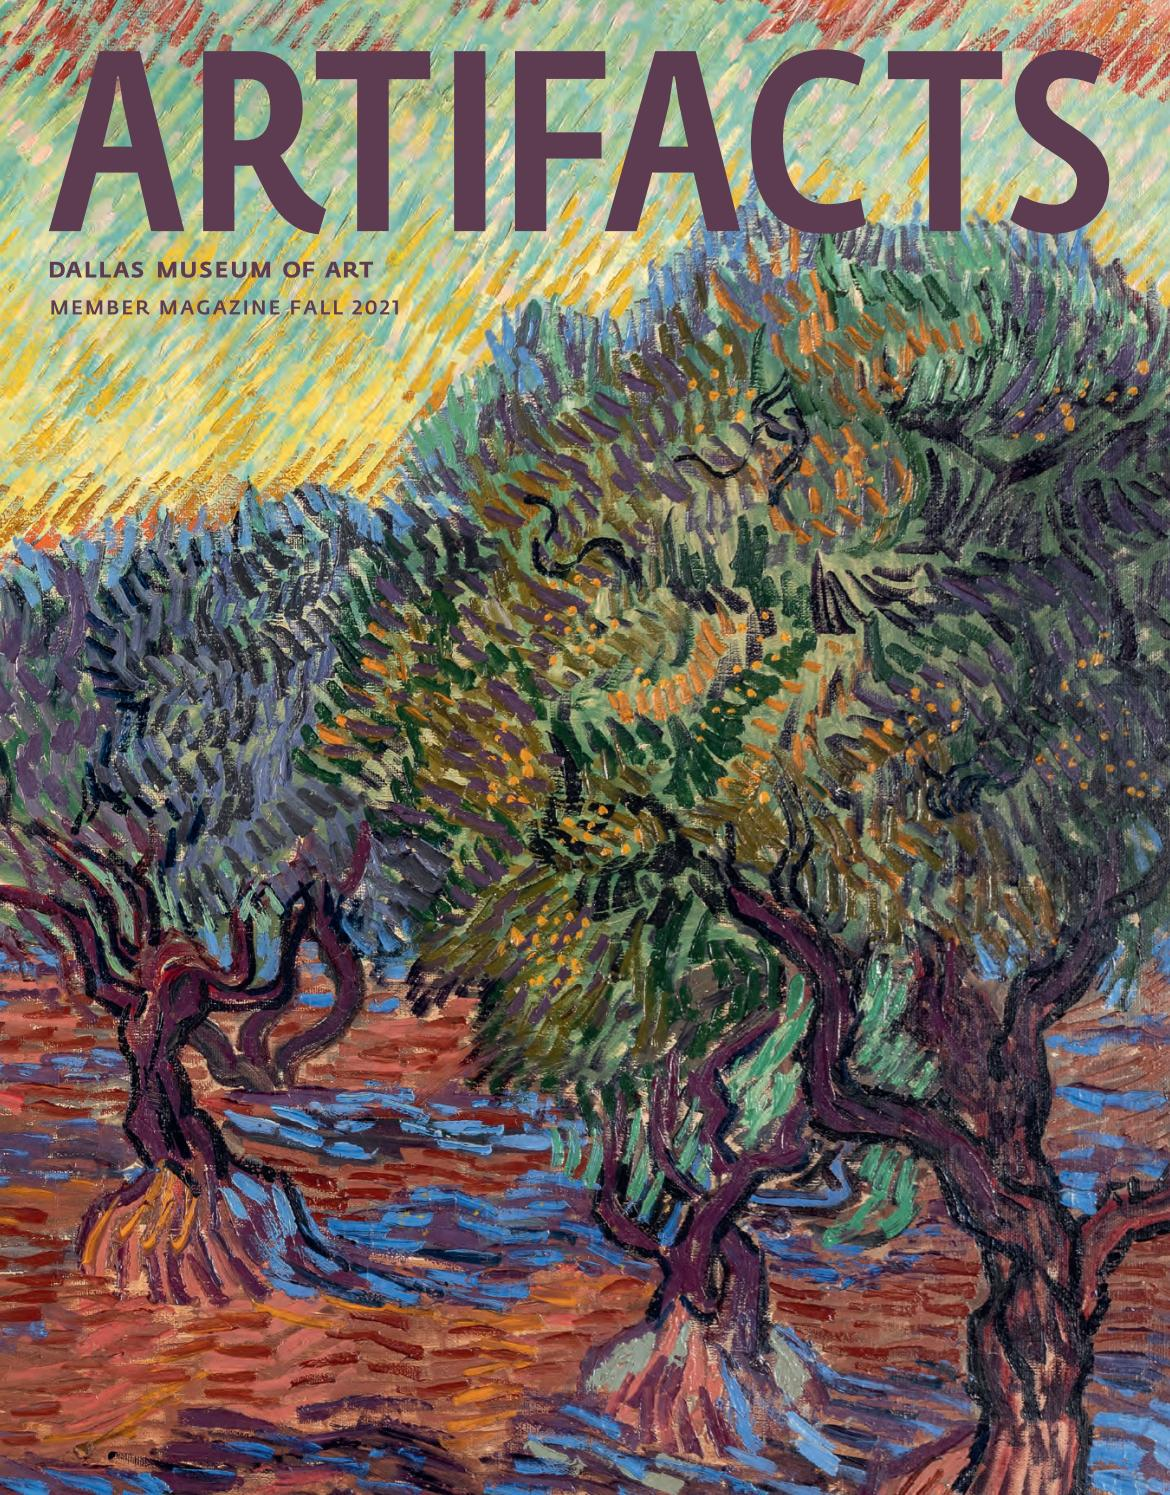 Artifacts Fall 2021 Member Magazine by Dallas Museum of Art - issuu